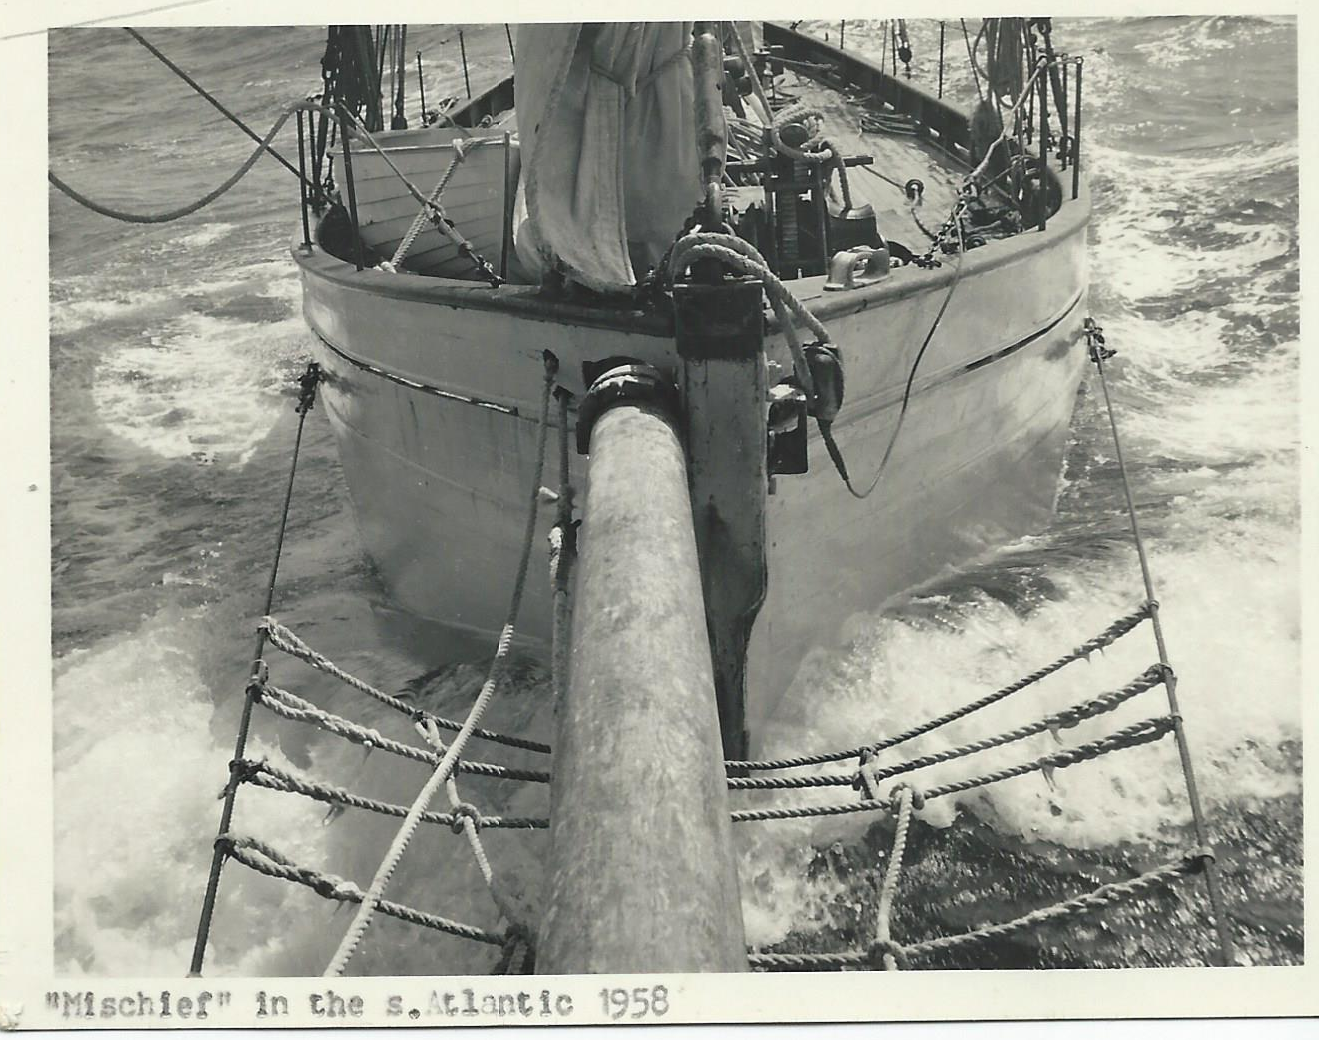 """Mischief"" in the South Atlantic 1958"